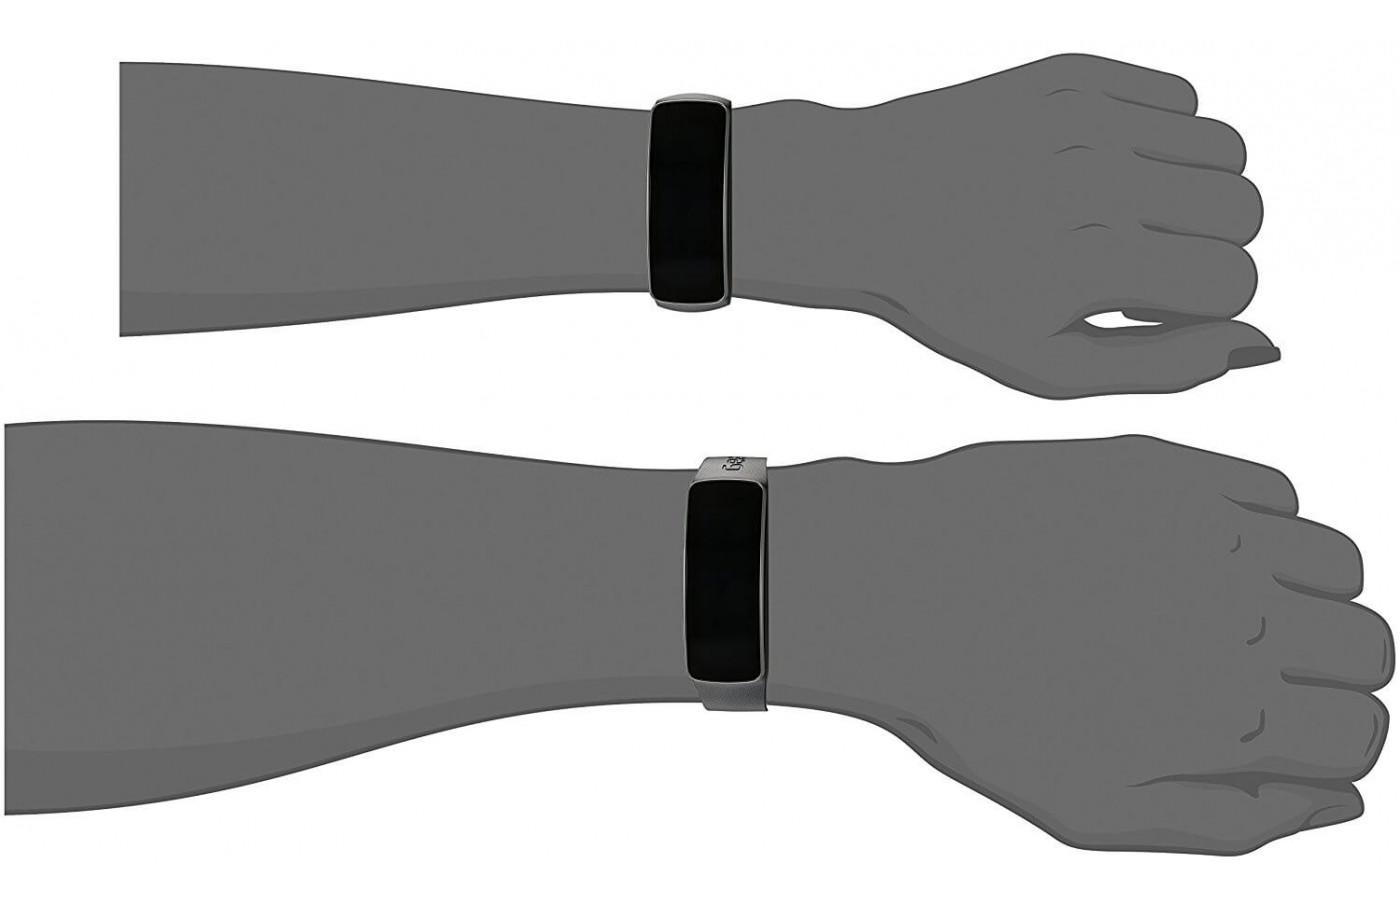 The Samsung Gear Fit is unisex and comes in one size its most.